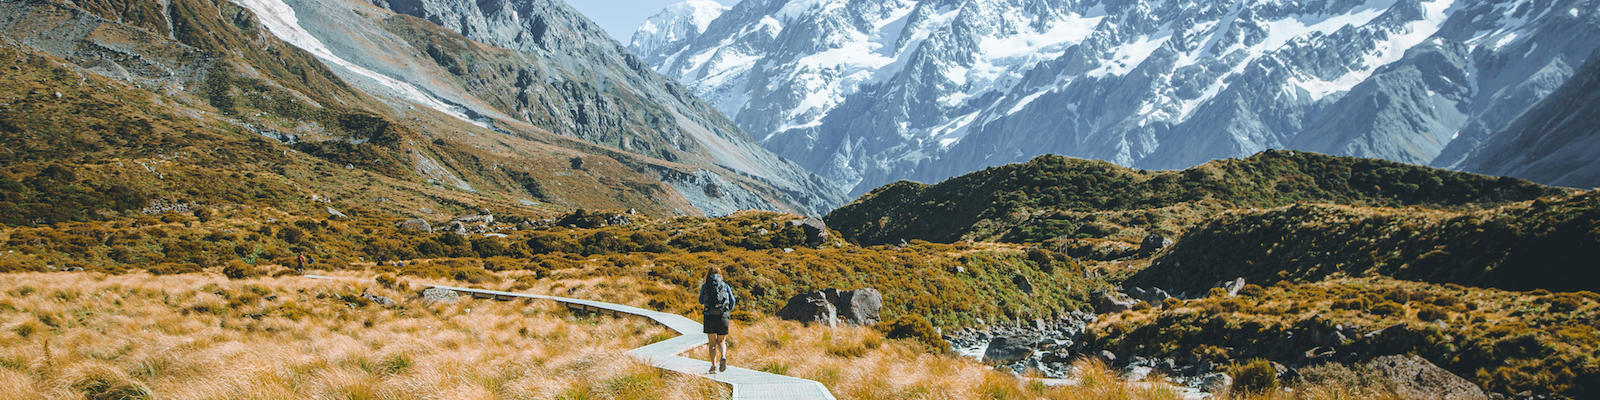 hiking in new zealand south island